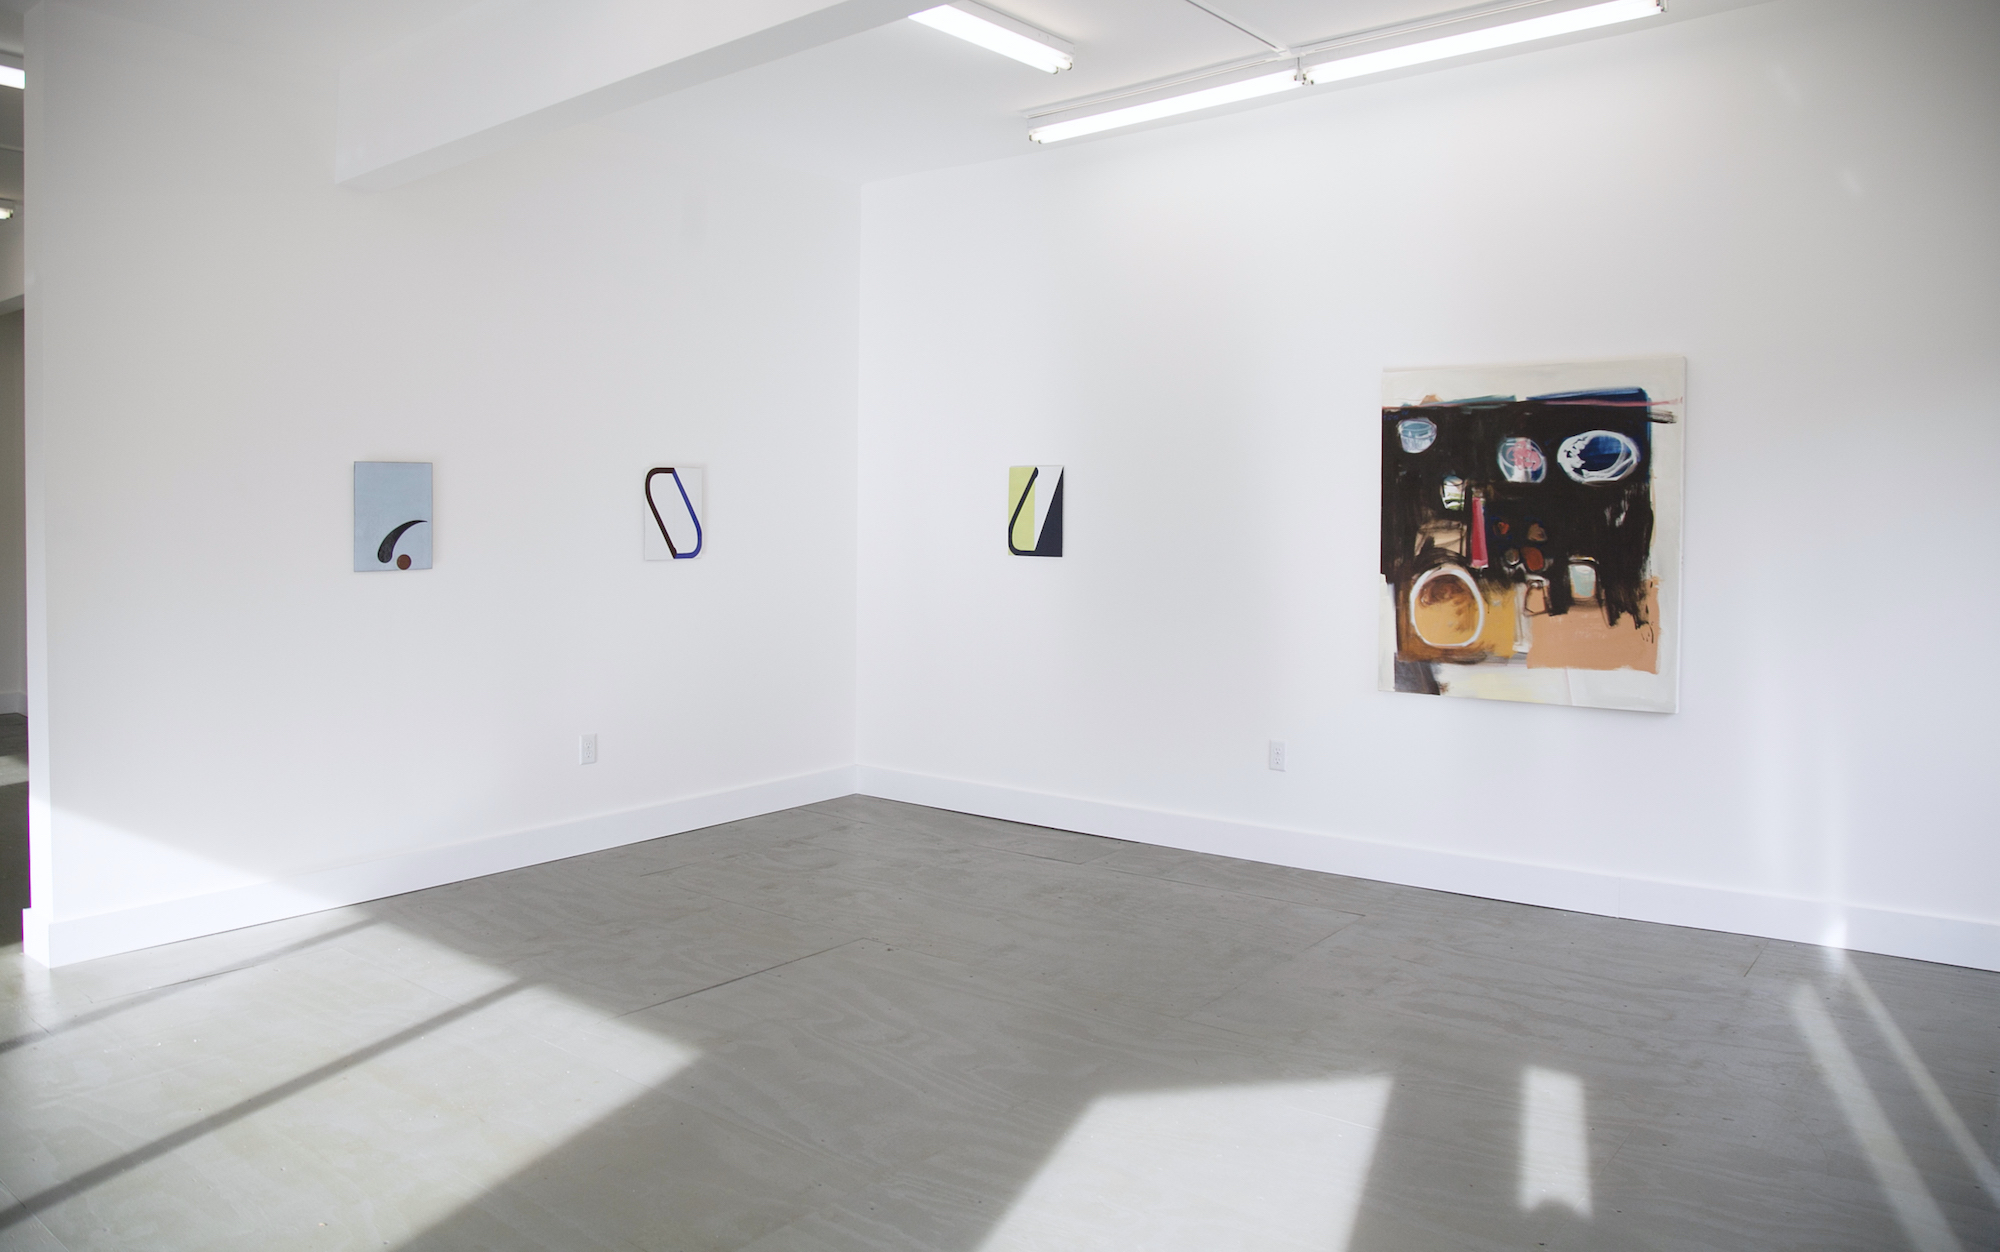 Work by Ulrike Müller (3 at left) and Emi Winter (right)